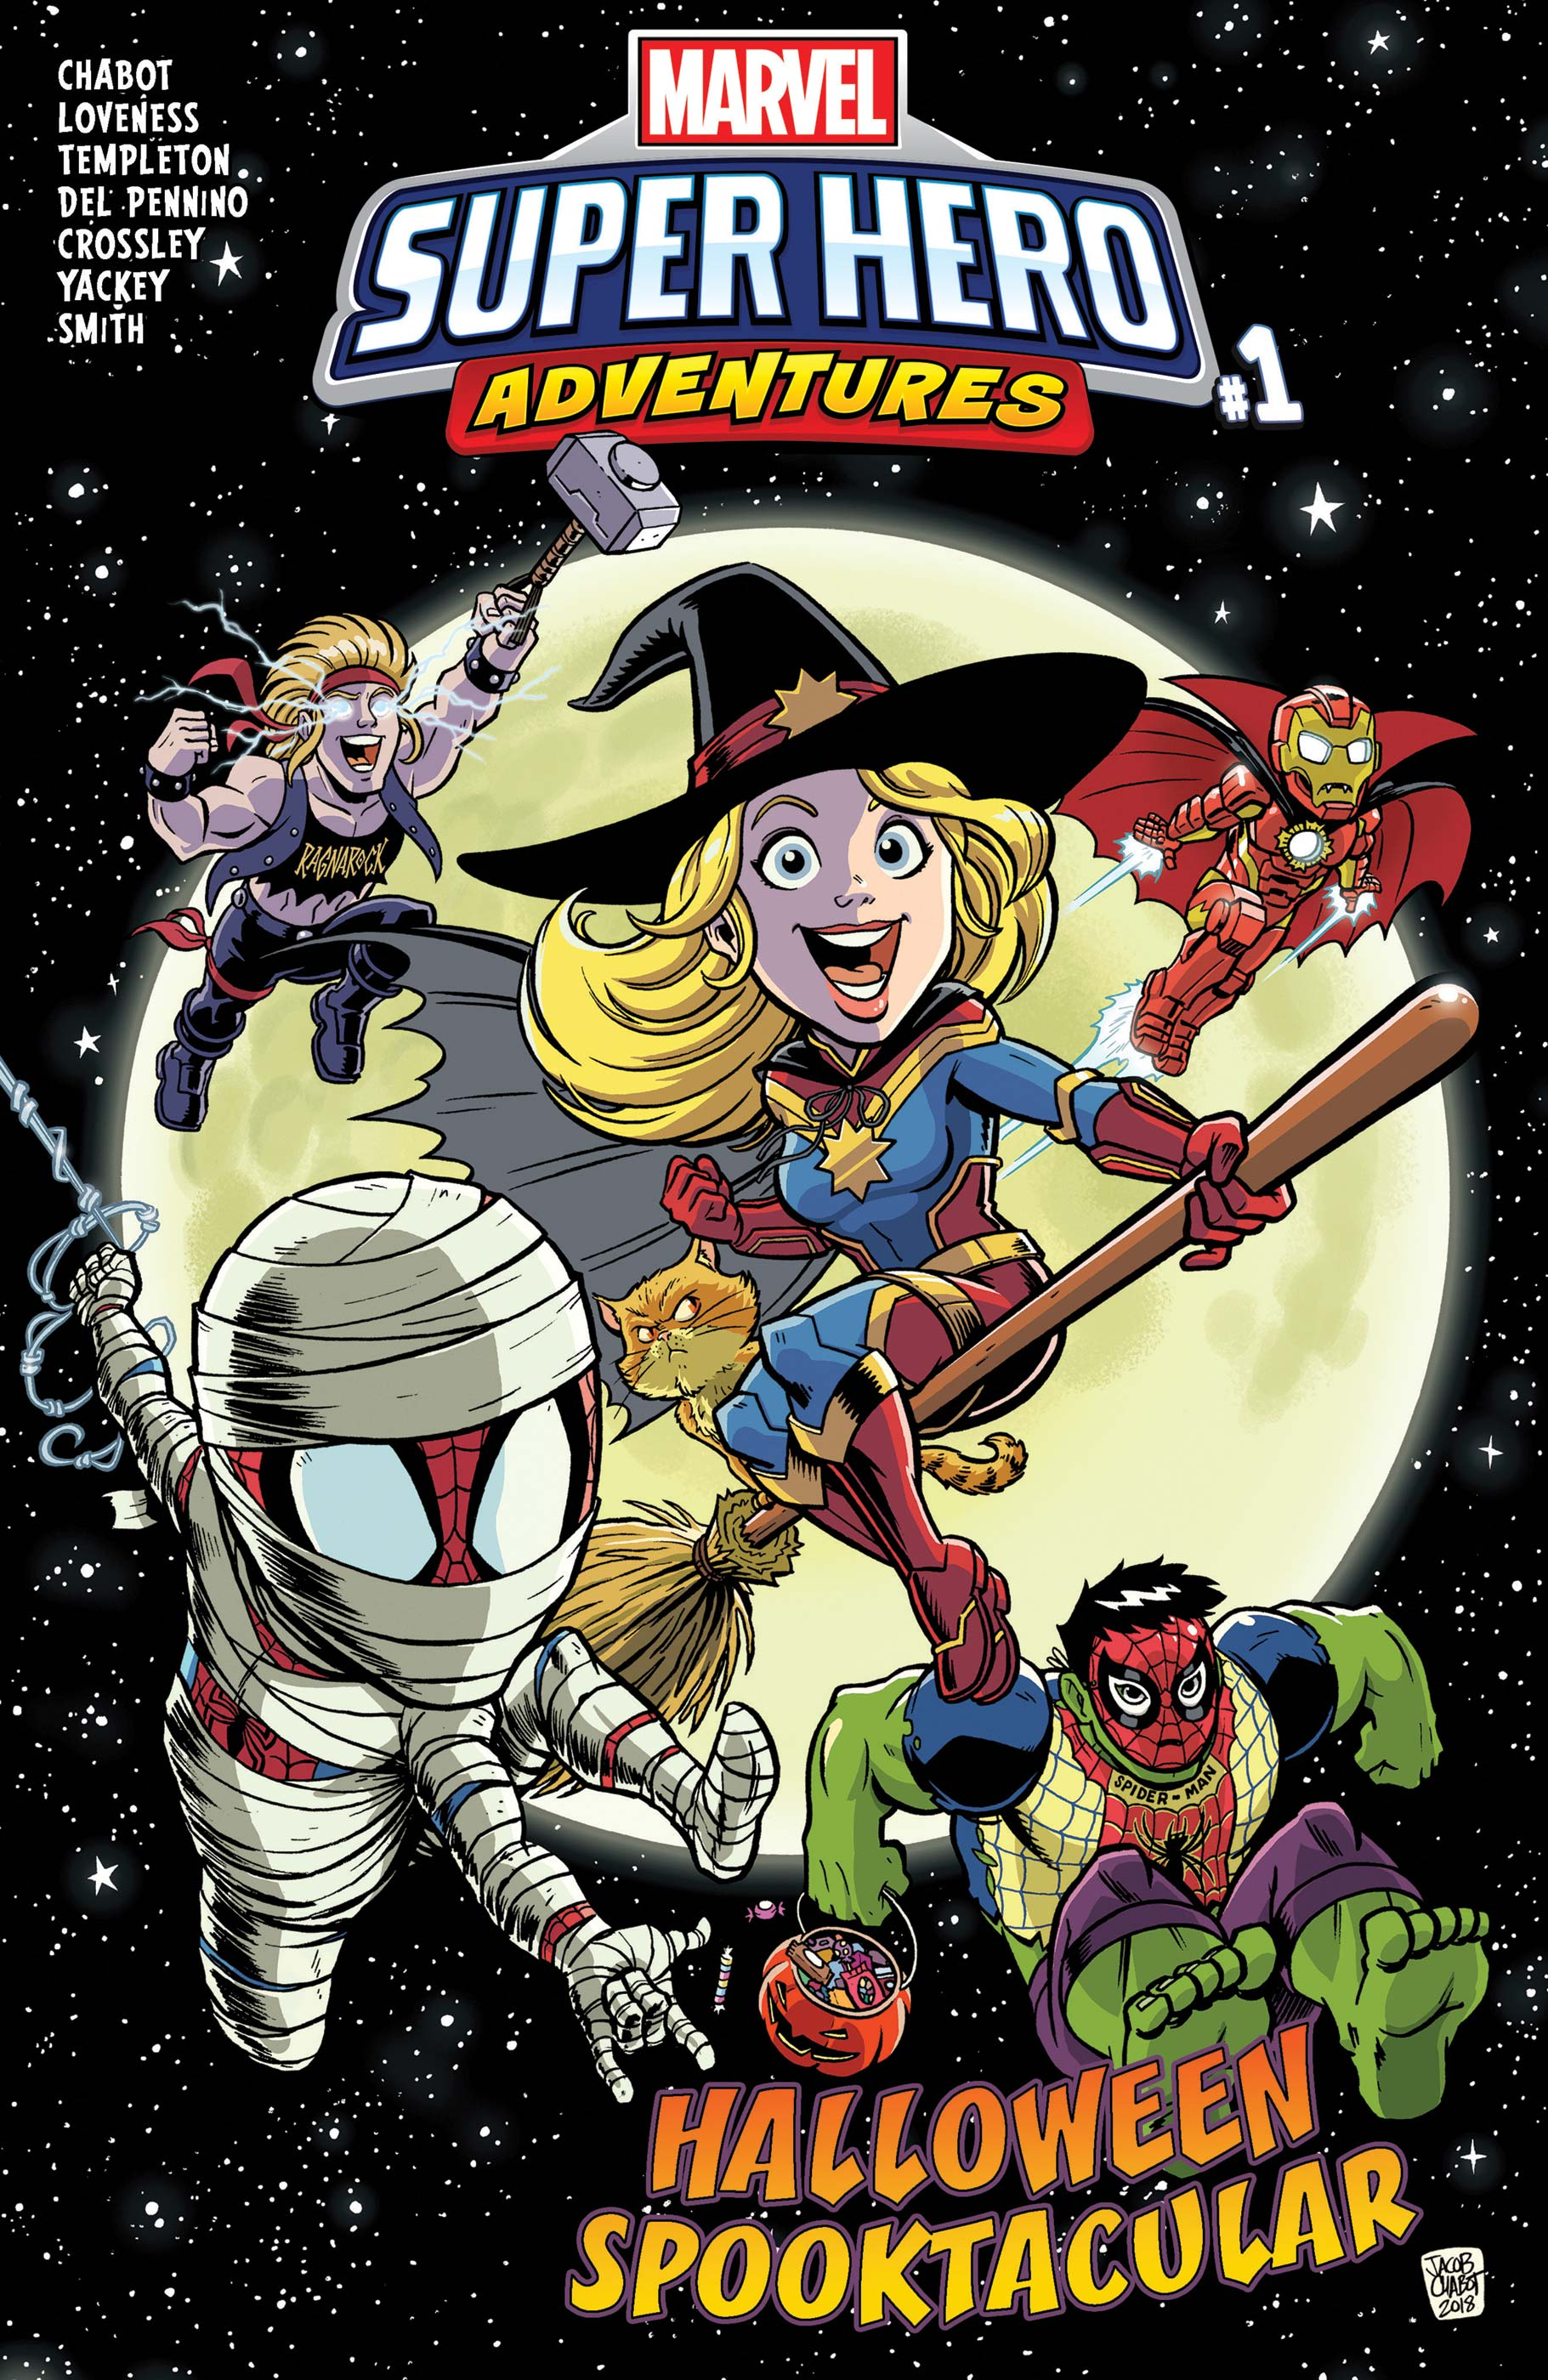 Marvel Super Hero Adventures: Captain Marvel - Halloween Spooktacular (2018) #1